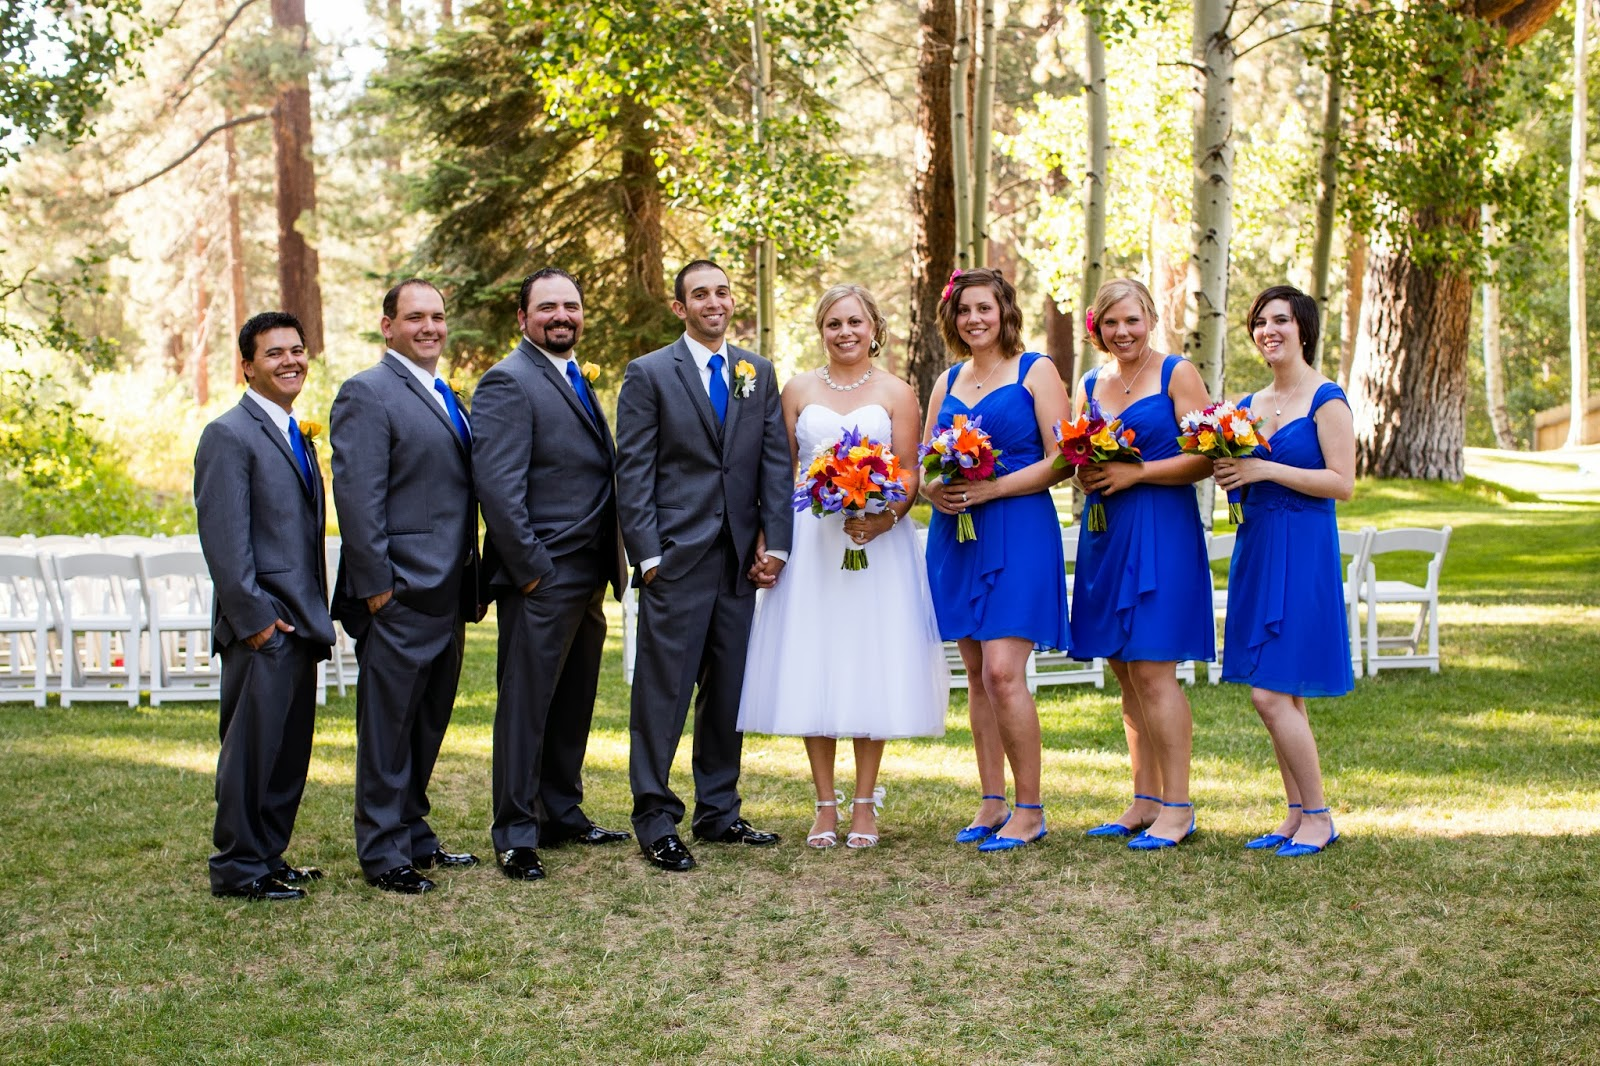 bright colored bridal party // Huong Forrest Photography // Take the Cake Event Planning